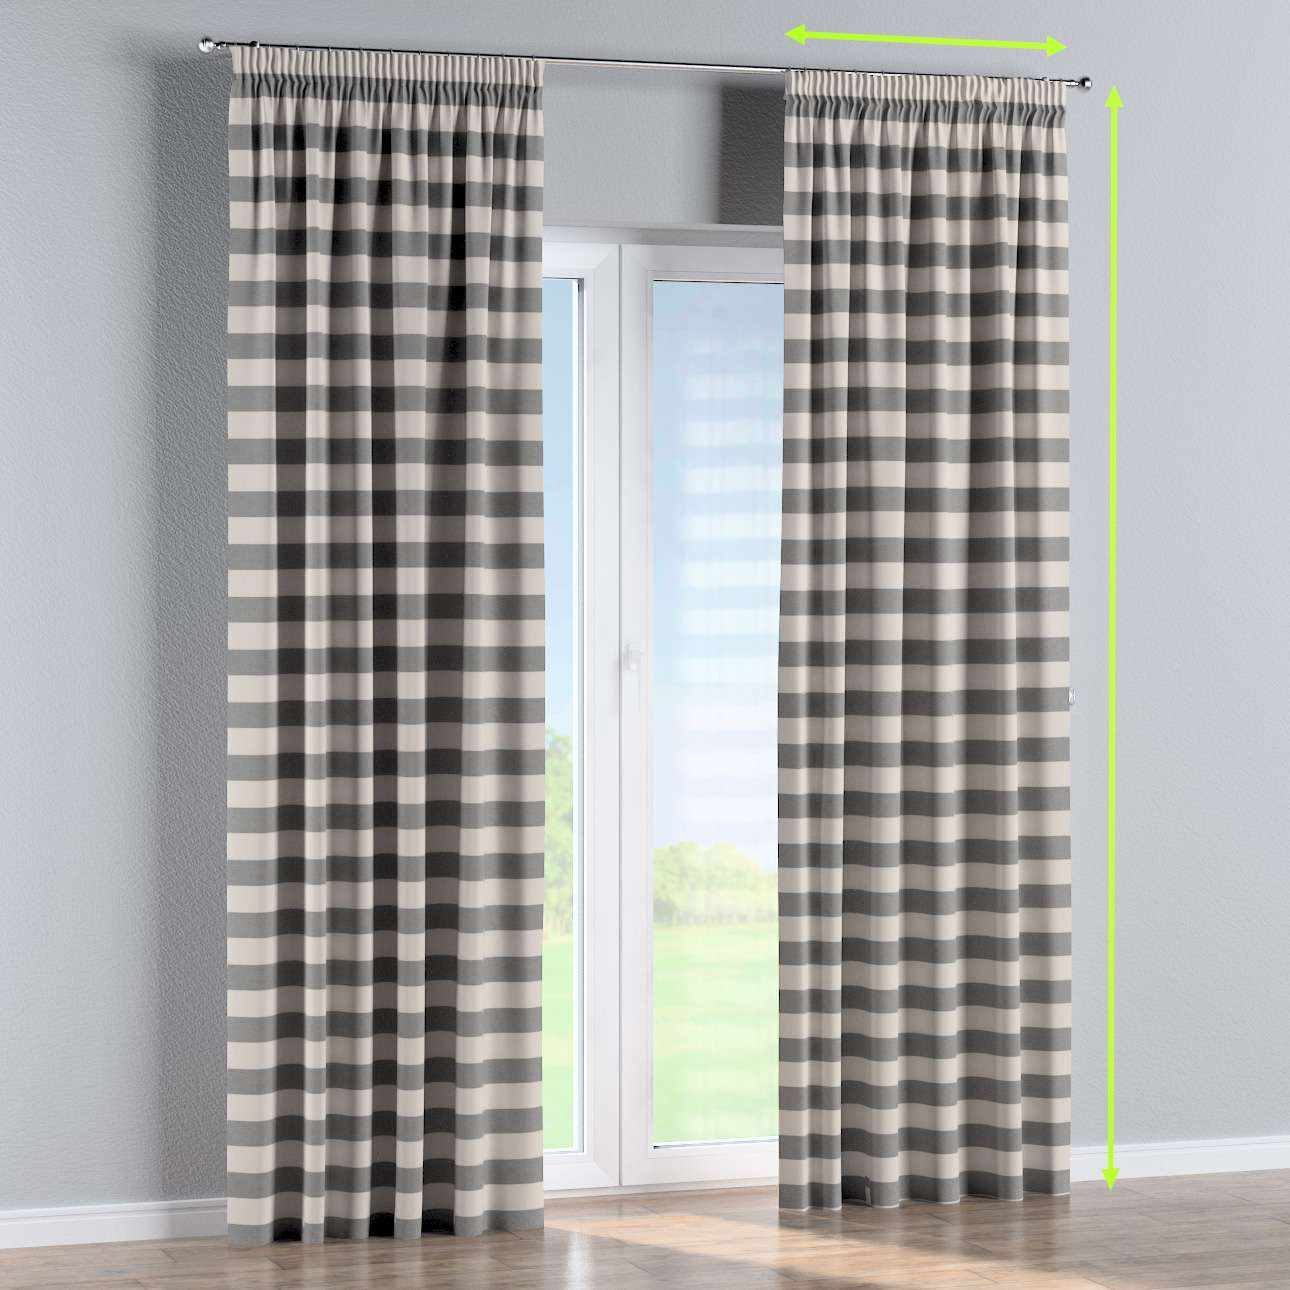 Pencil pleat curtain in collection Quadro, fabric: 142-71